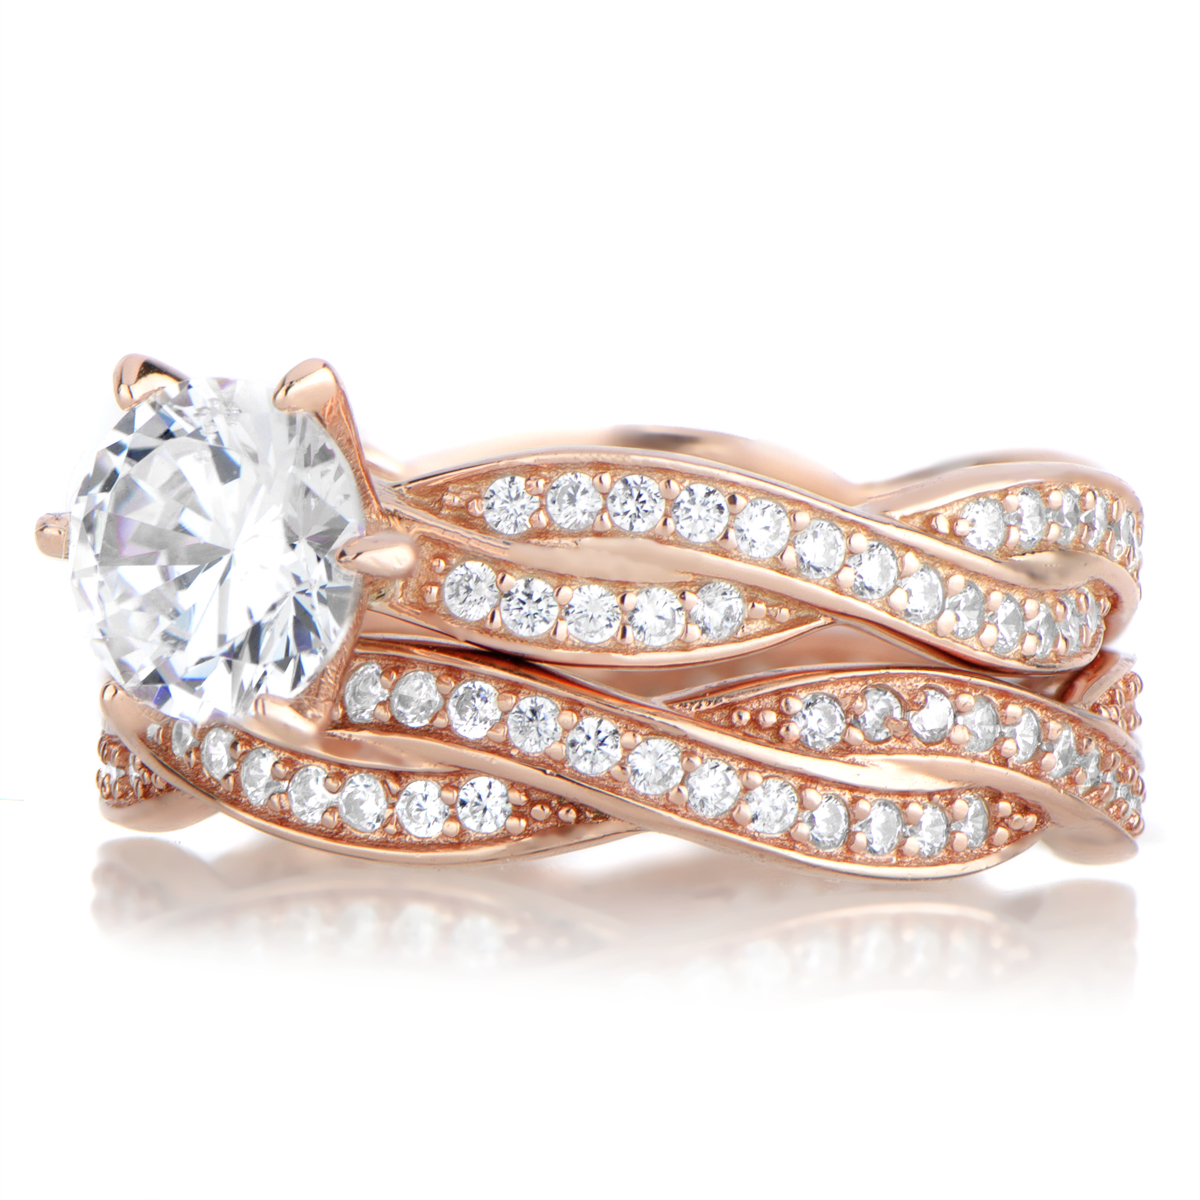 Devera s Rose Gold CZ Twisted Wedding Ring Set